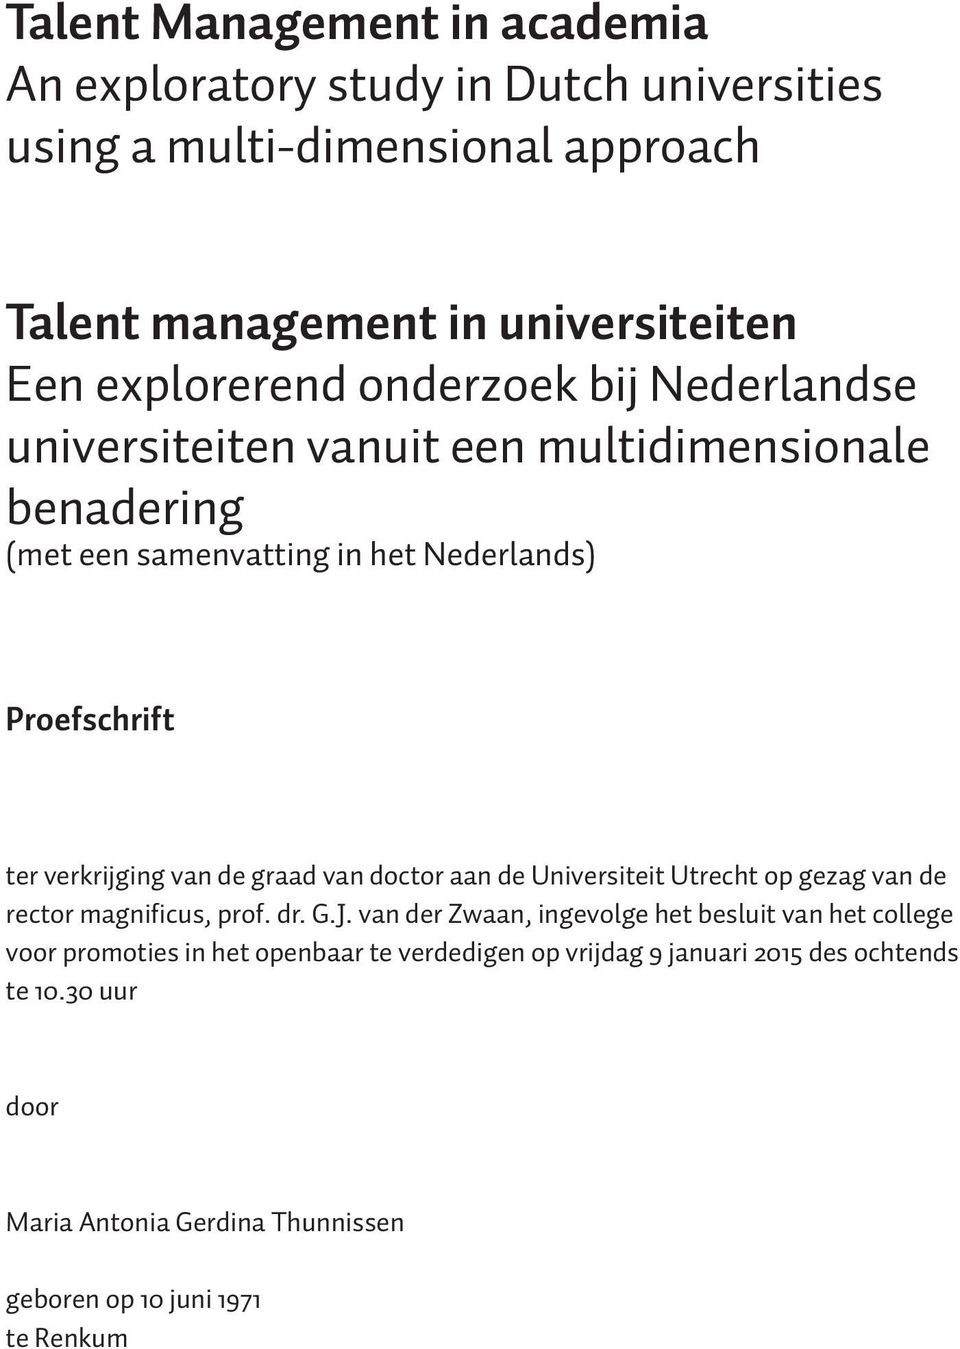 talent management in academia essay When you recommend something to management, what approach do you usually  use  what sort of performance standards have you held employees to.